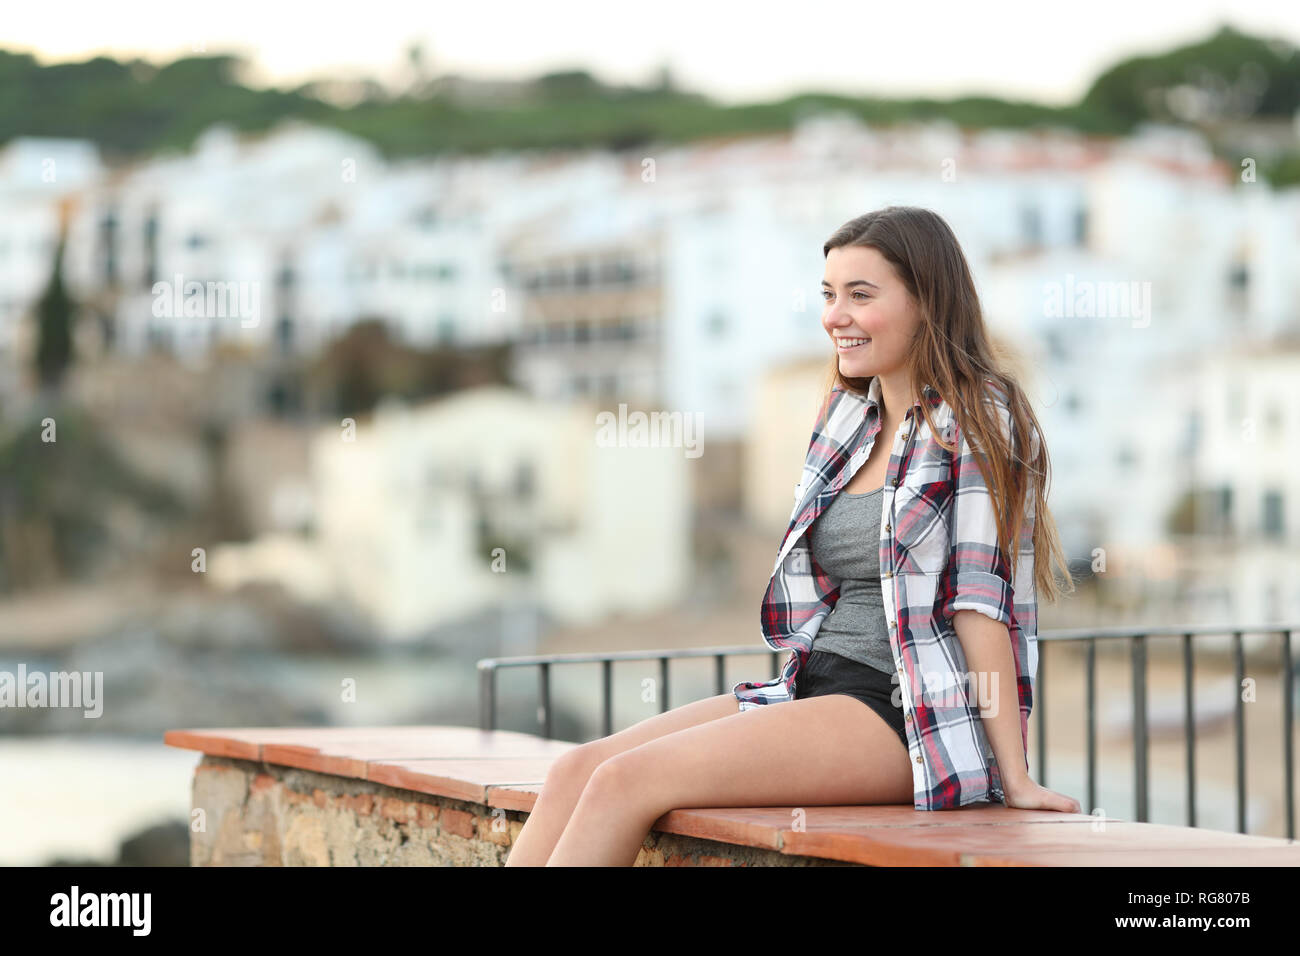 Happy teenager relaxing contemplating landscape sitting on a ledge in a town outskirts - Stock Image